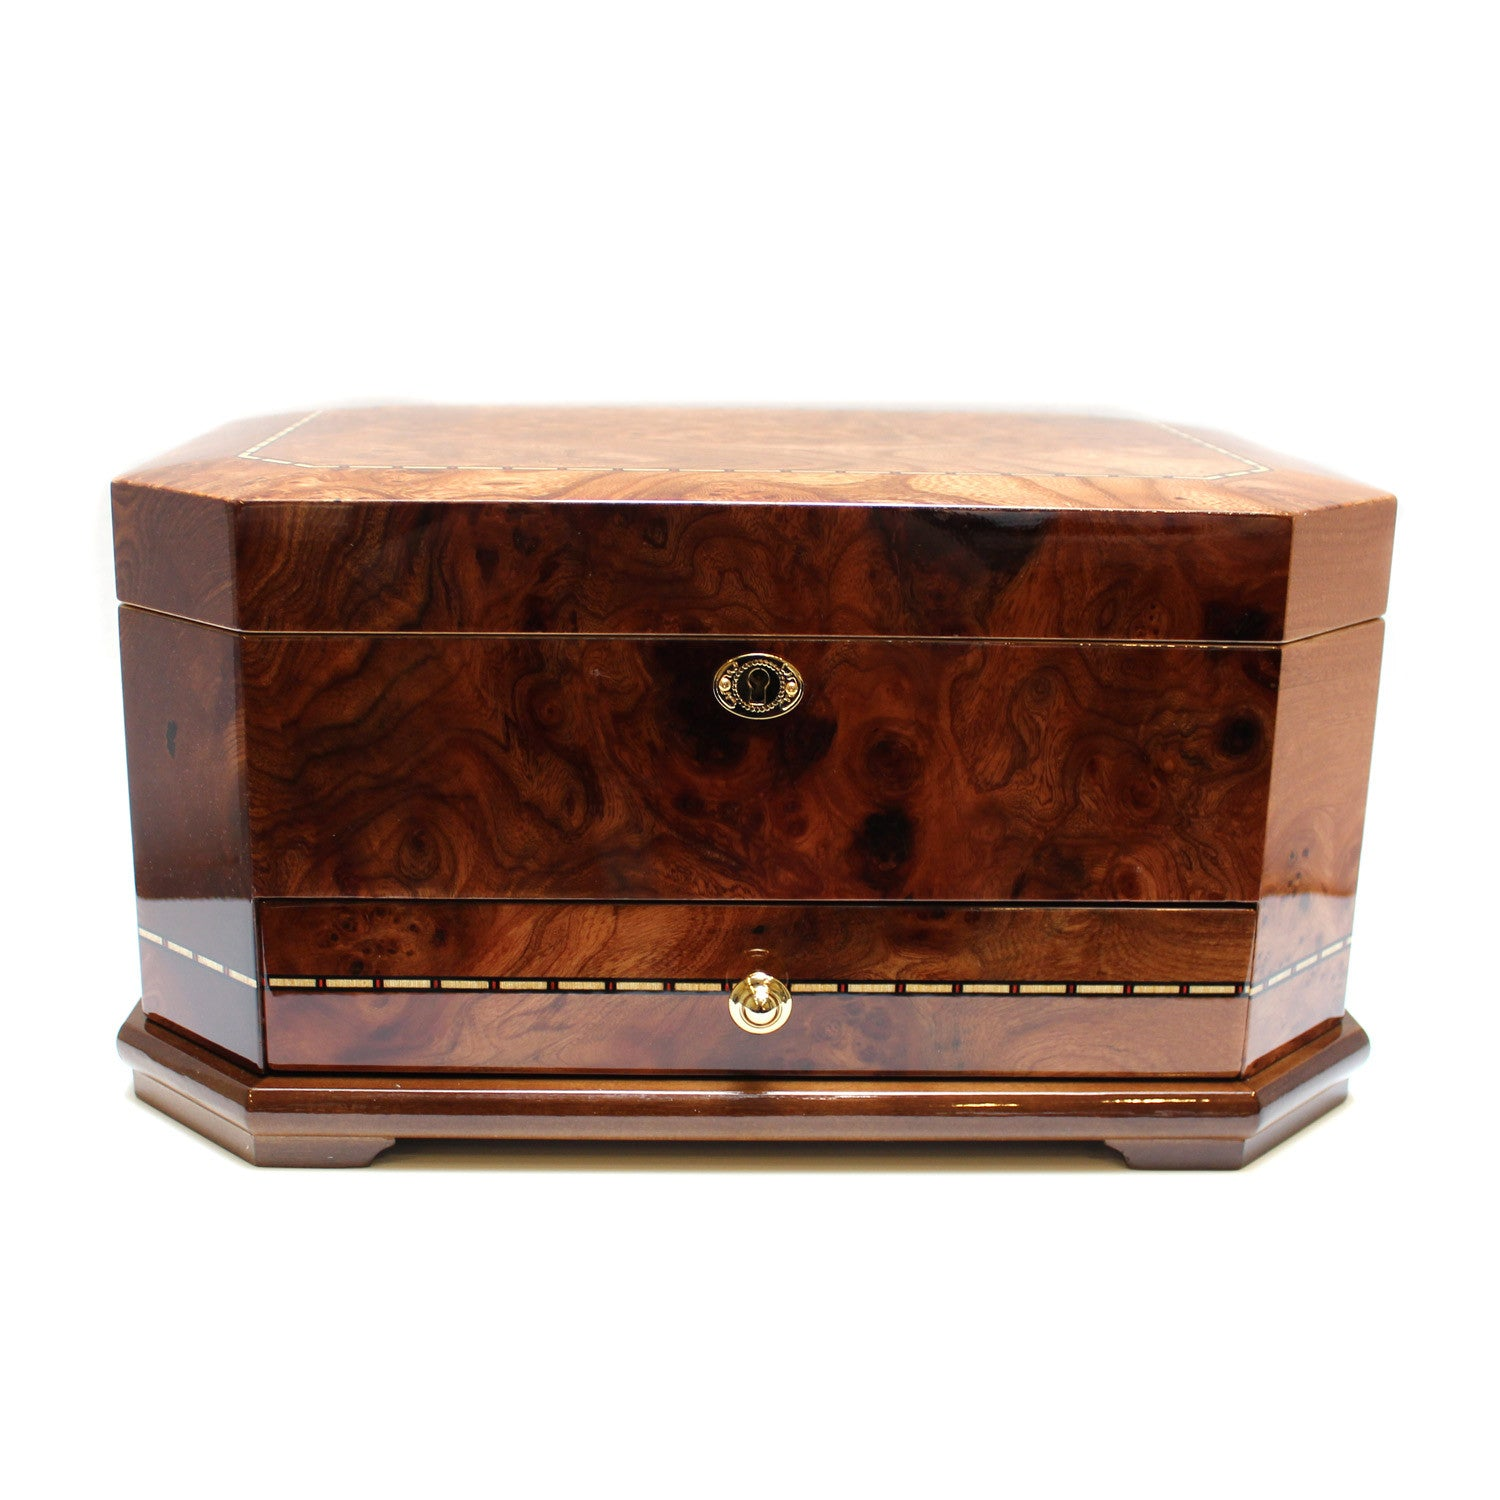 Chestnut Wood Jewelry Box with Pull Out Drawer Desires by Mikolay